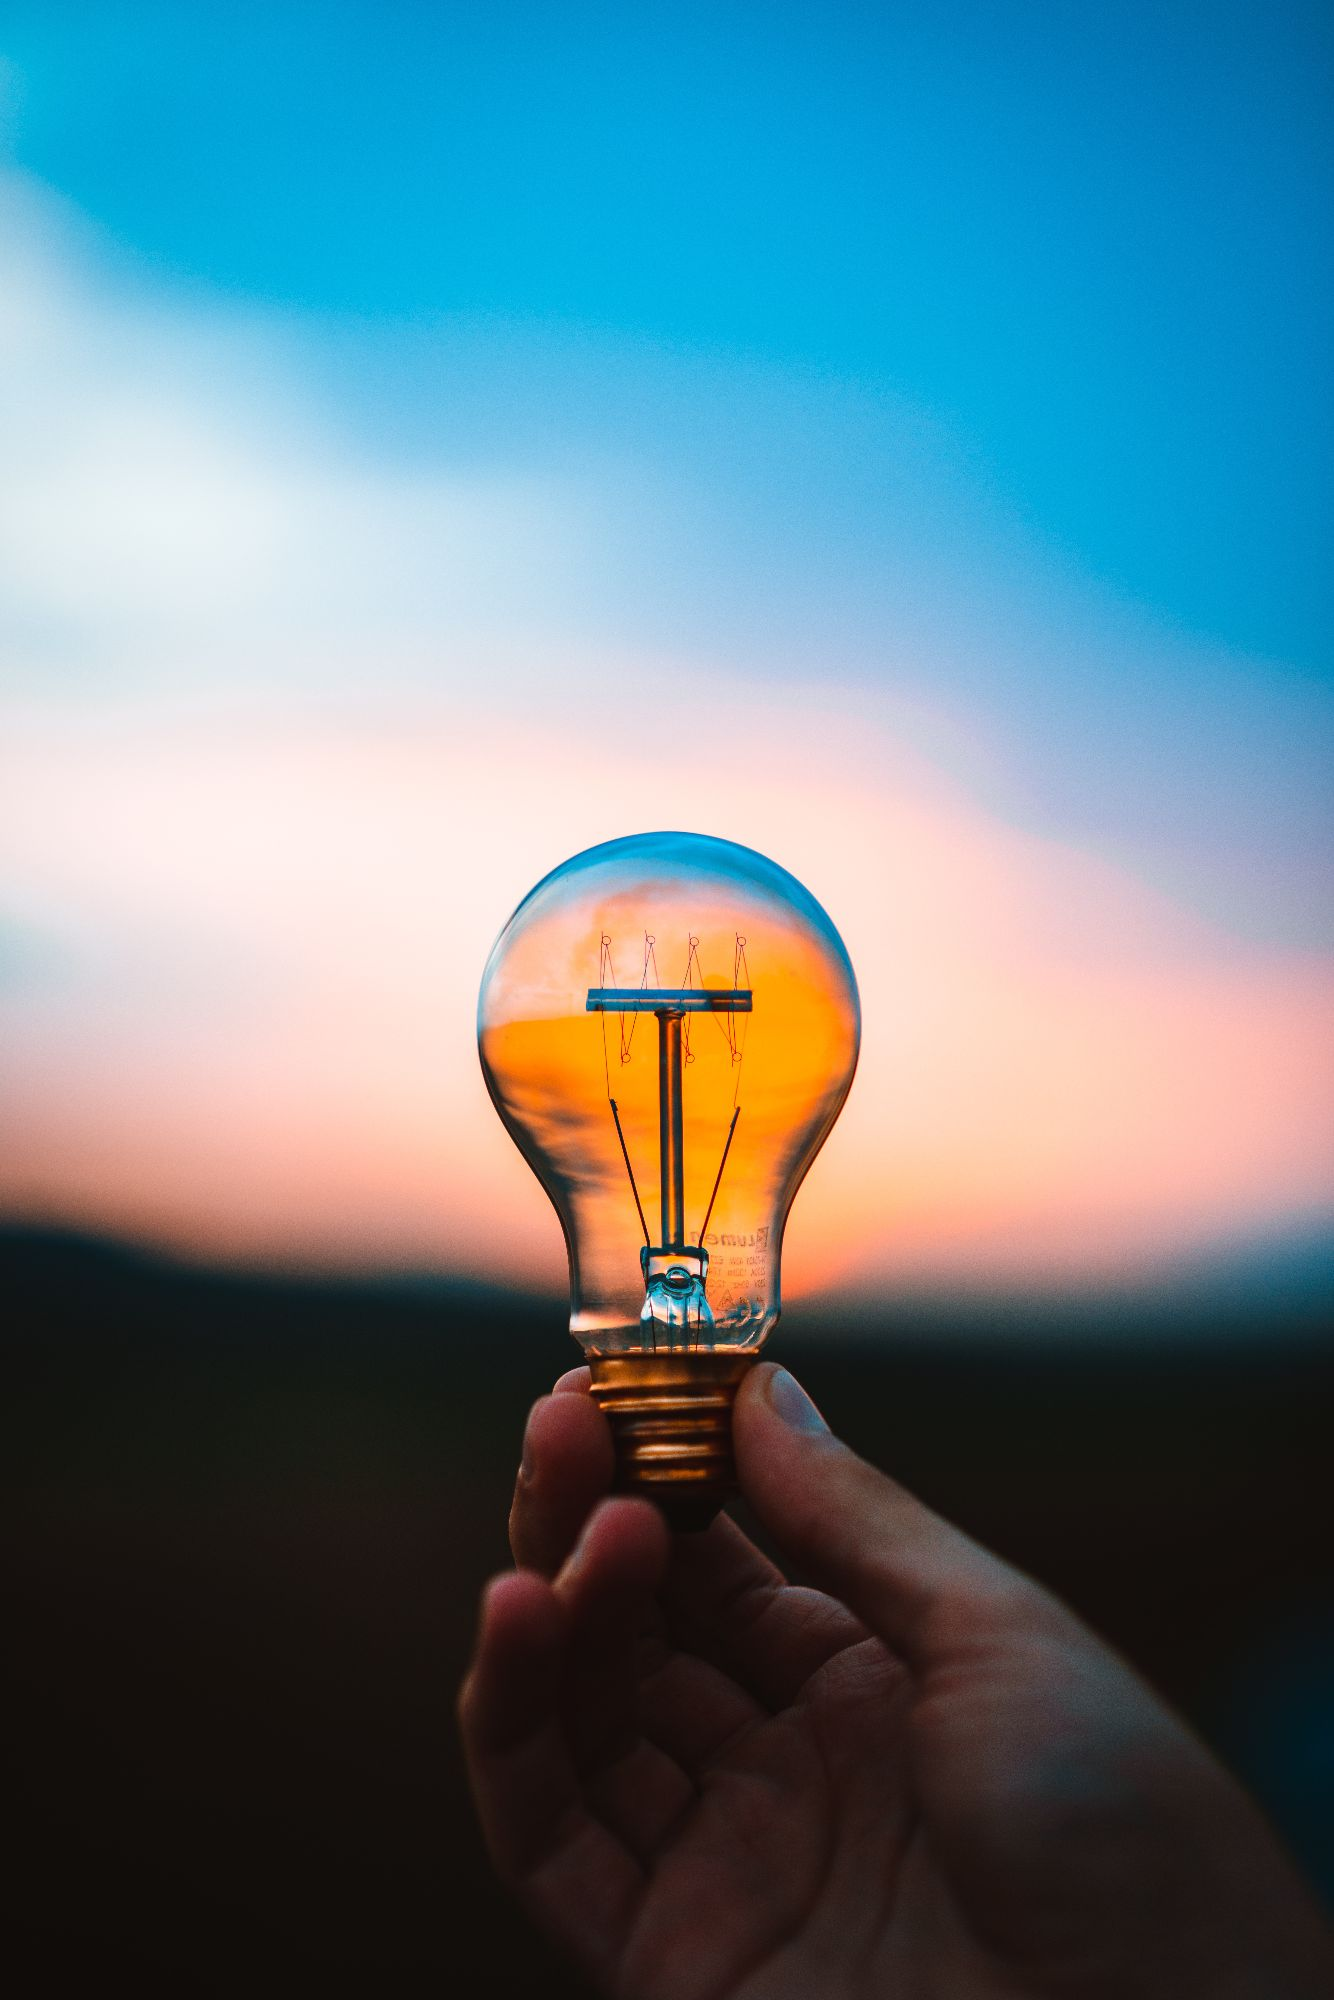 Close up of someone holding a lightbulb with the sun setting in the background